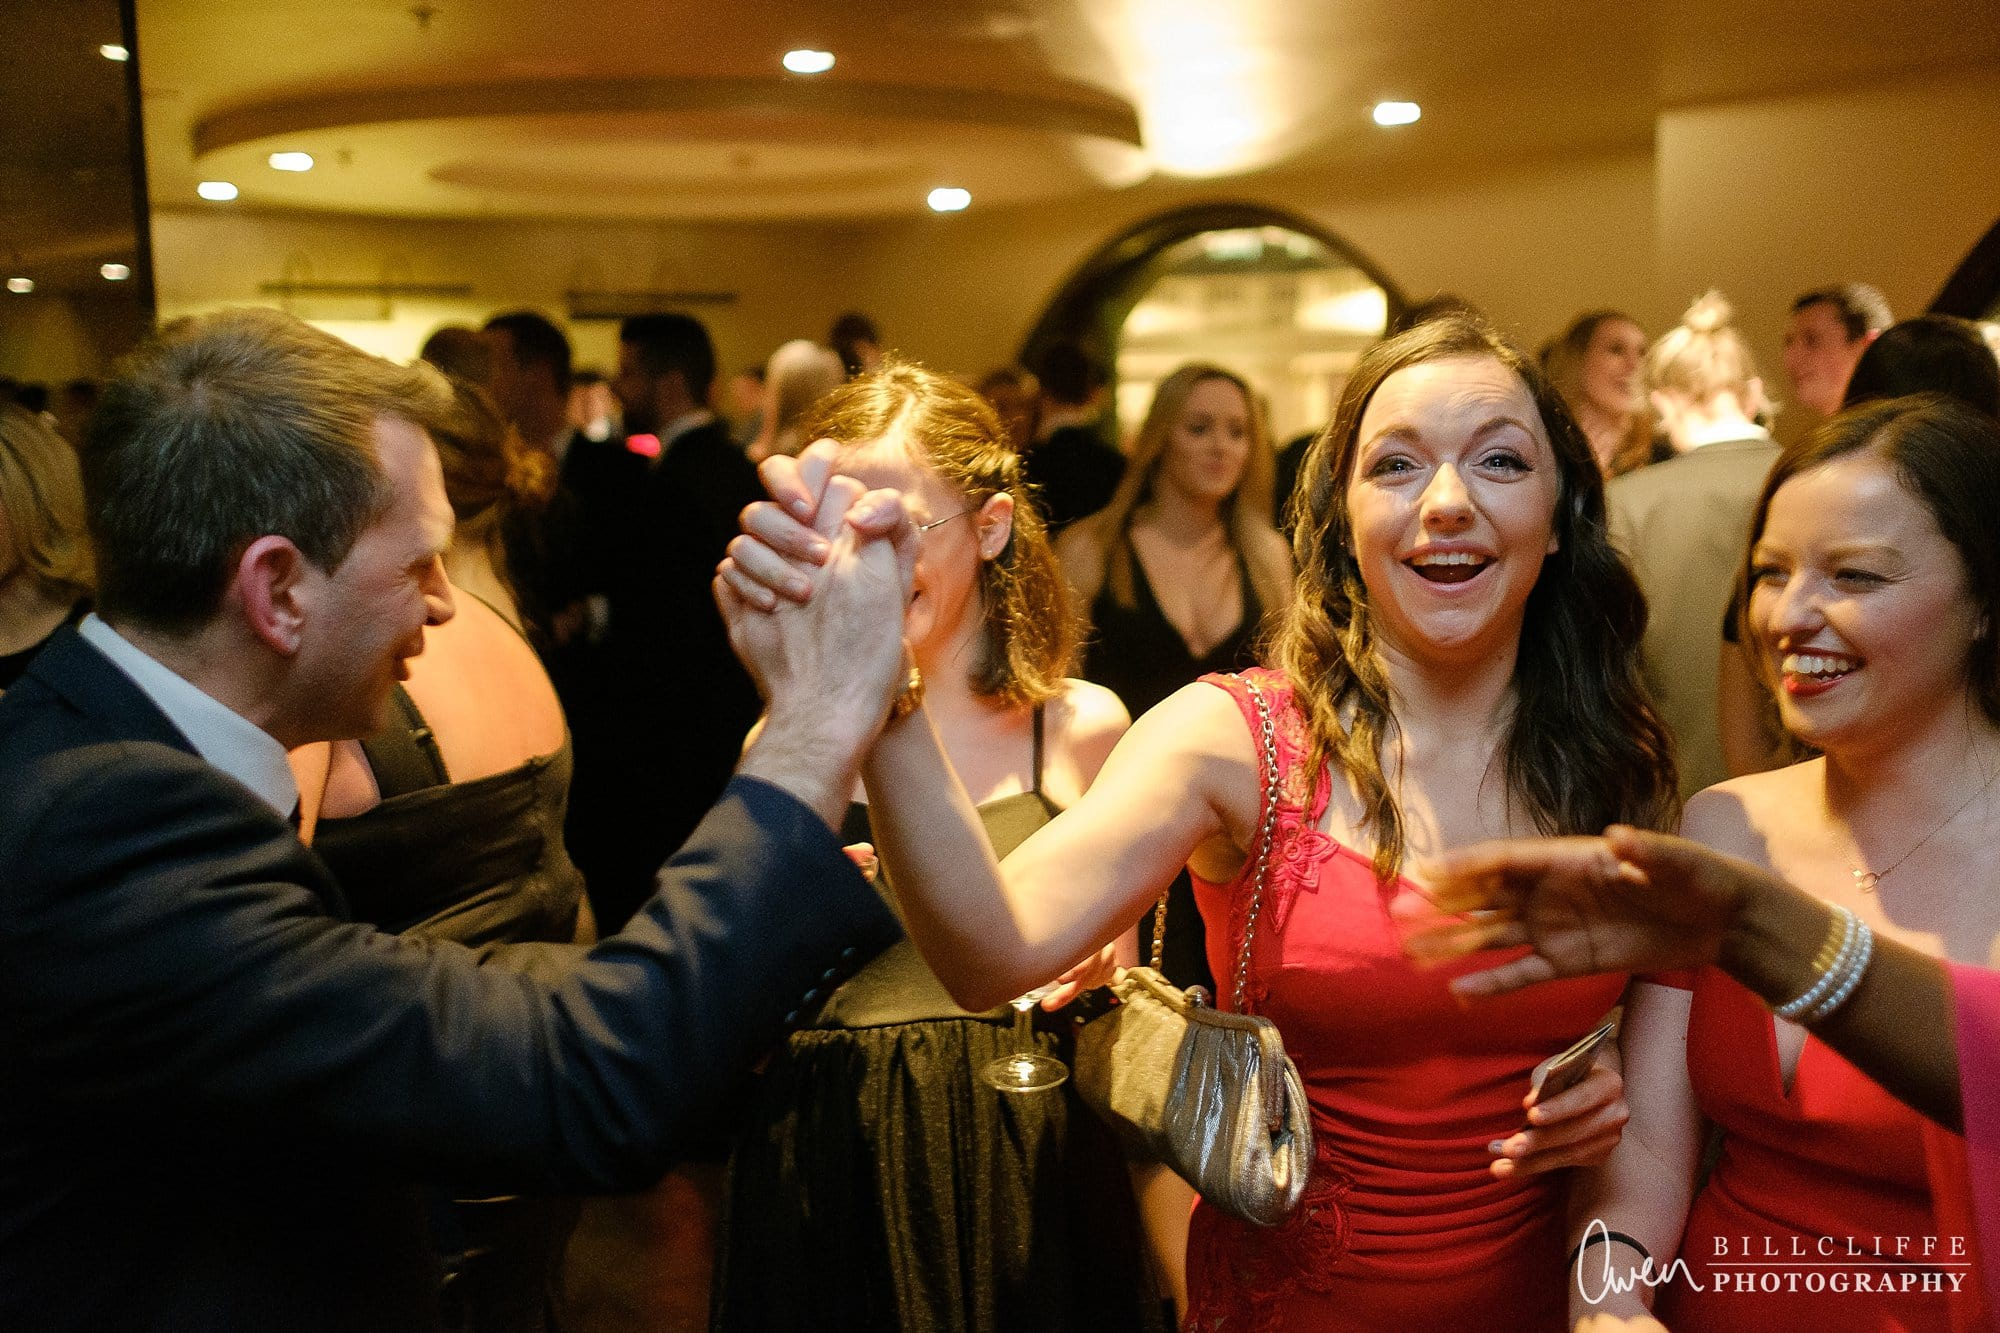 london wedding photographer magician lee smith 023 - Event Entertainer Spotlight: Lee Smith, Walkabout Magician